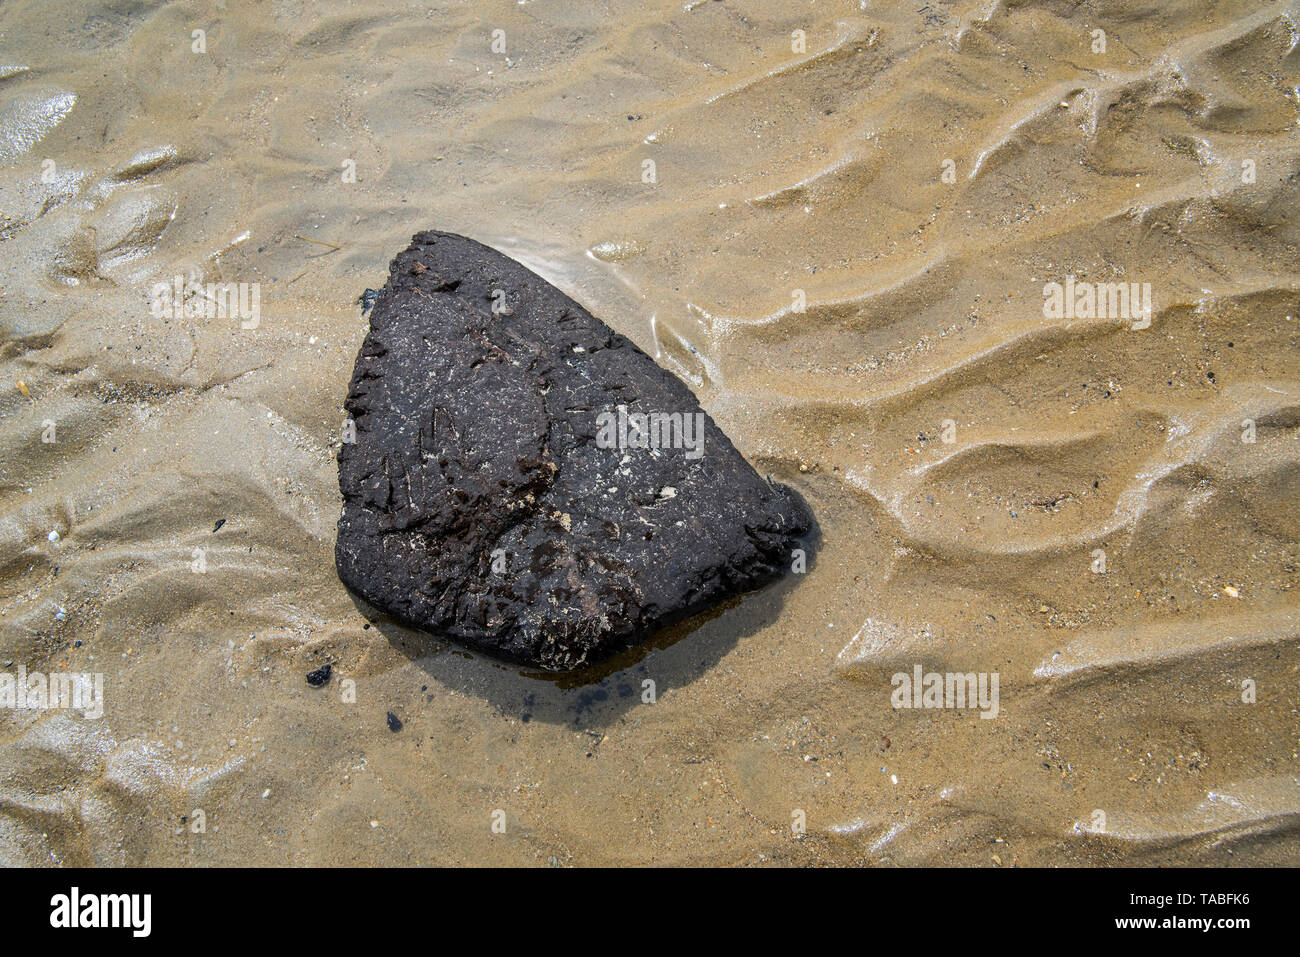 Black chunk of turf from exposed peat layer on the seabed washed ashore on sand beach along the North Sea coast, Belgium - Stock Image